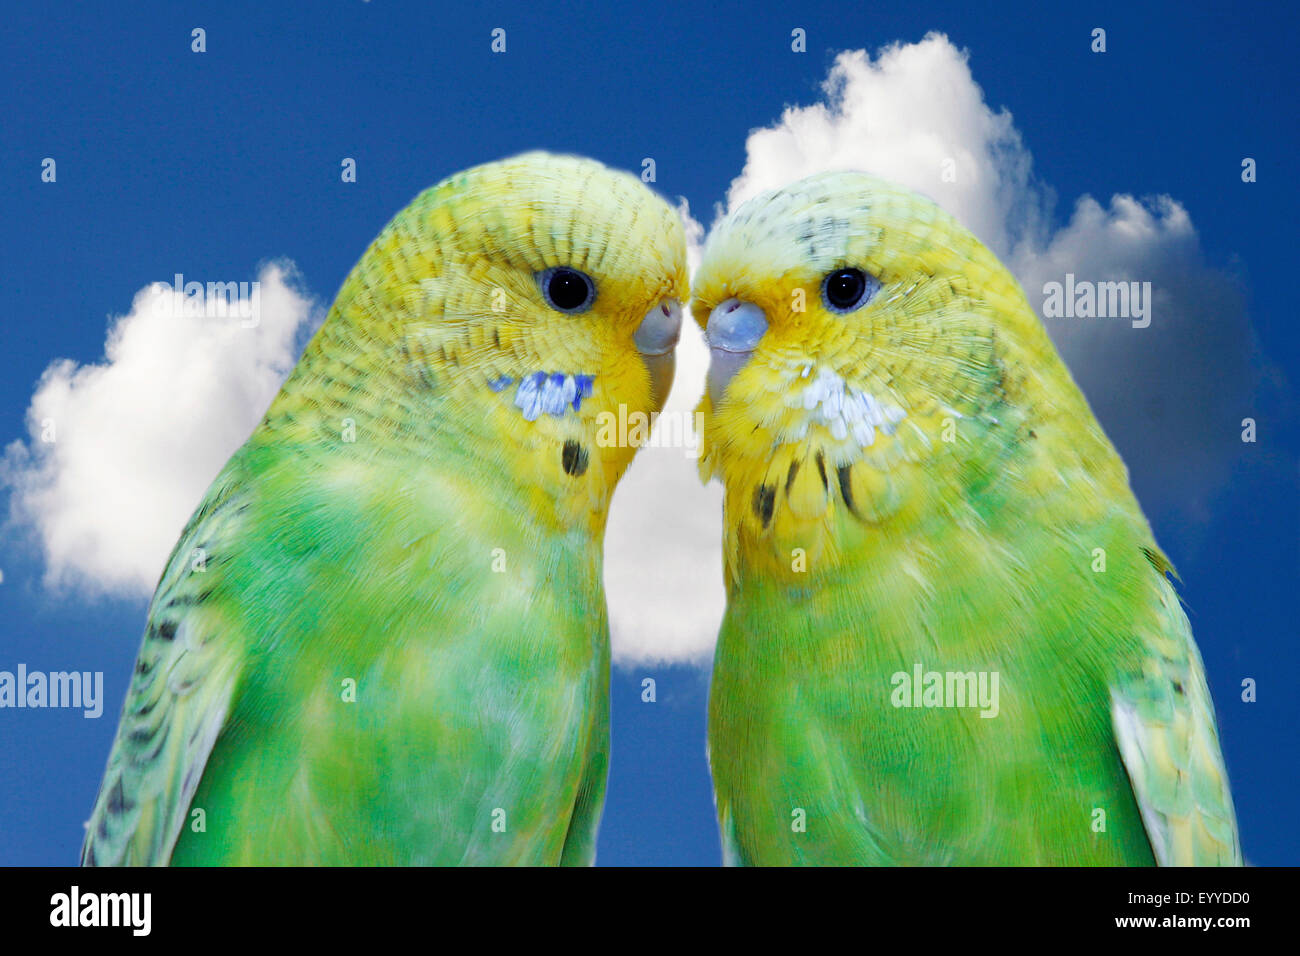 two billing green budgies - Stock Image